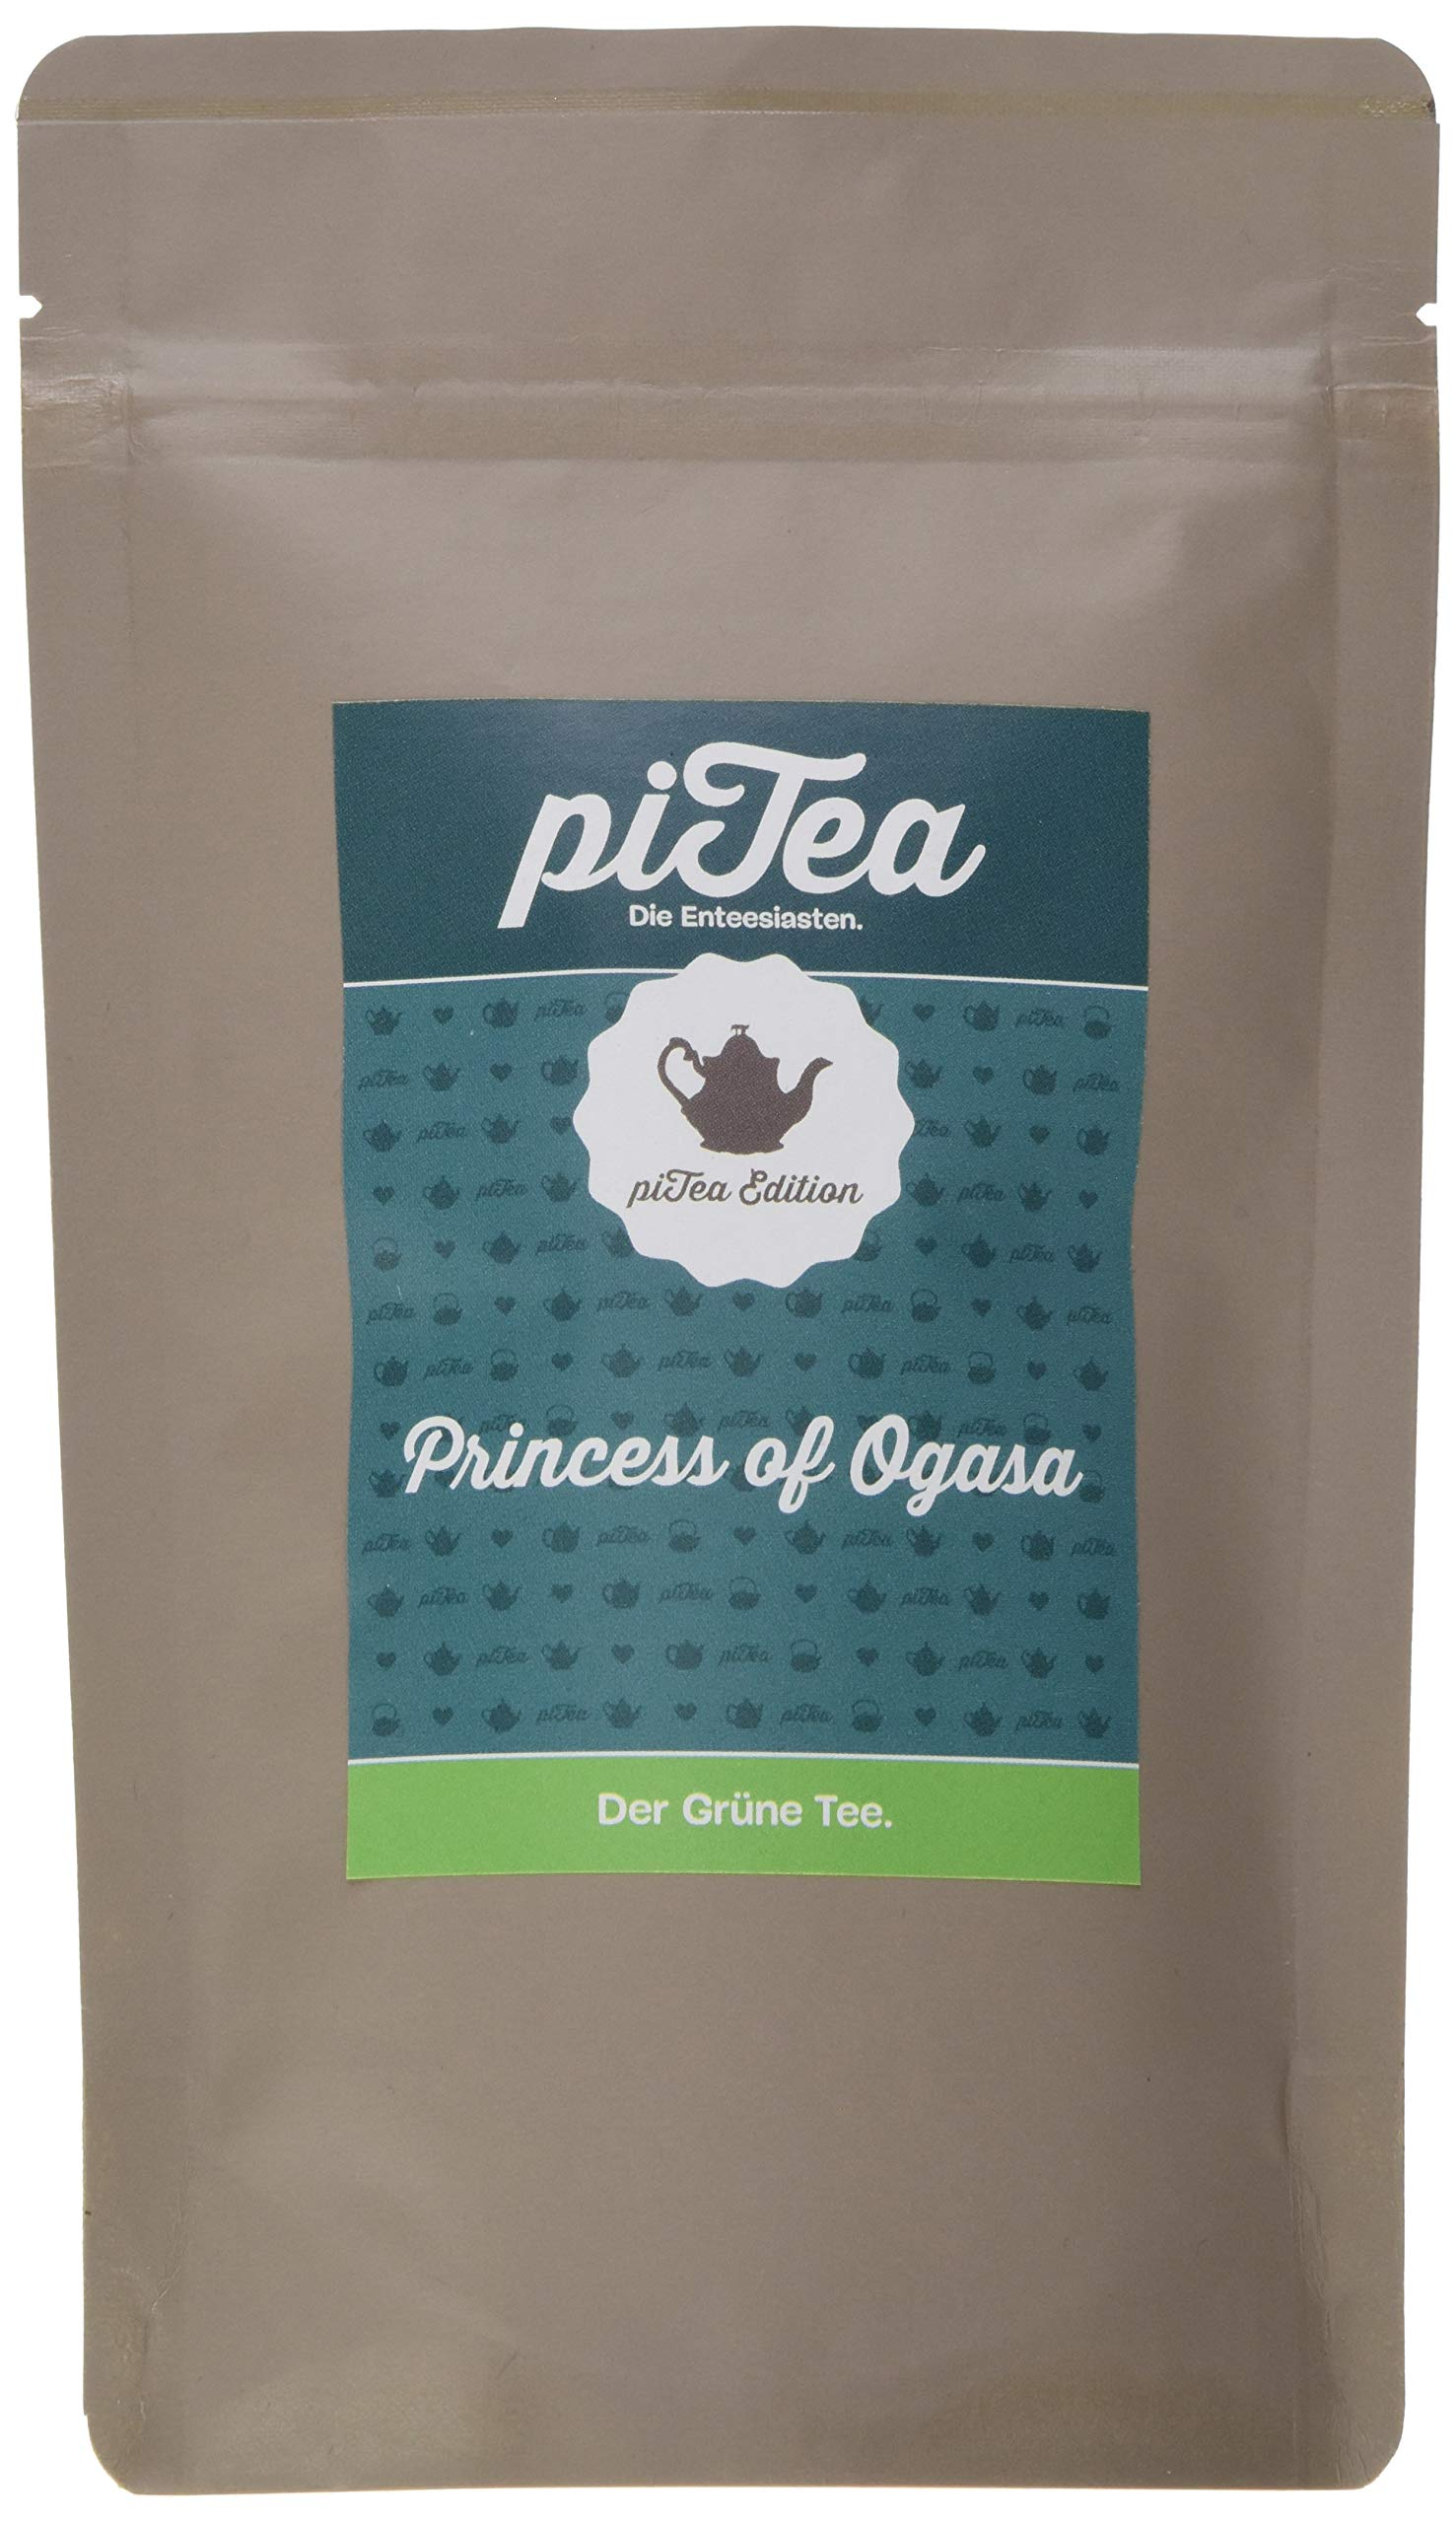 Pi-Tea-Princess-of-Ogasa-Tte-Grner-Tee-natrlich-und-vegan-2er-Pack-2-x-75-g